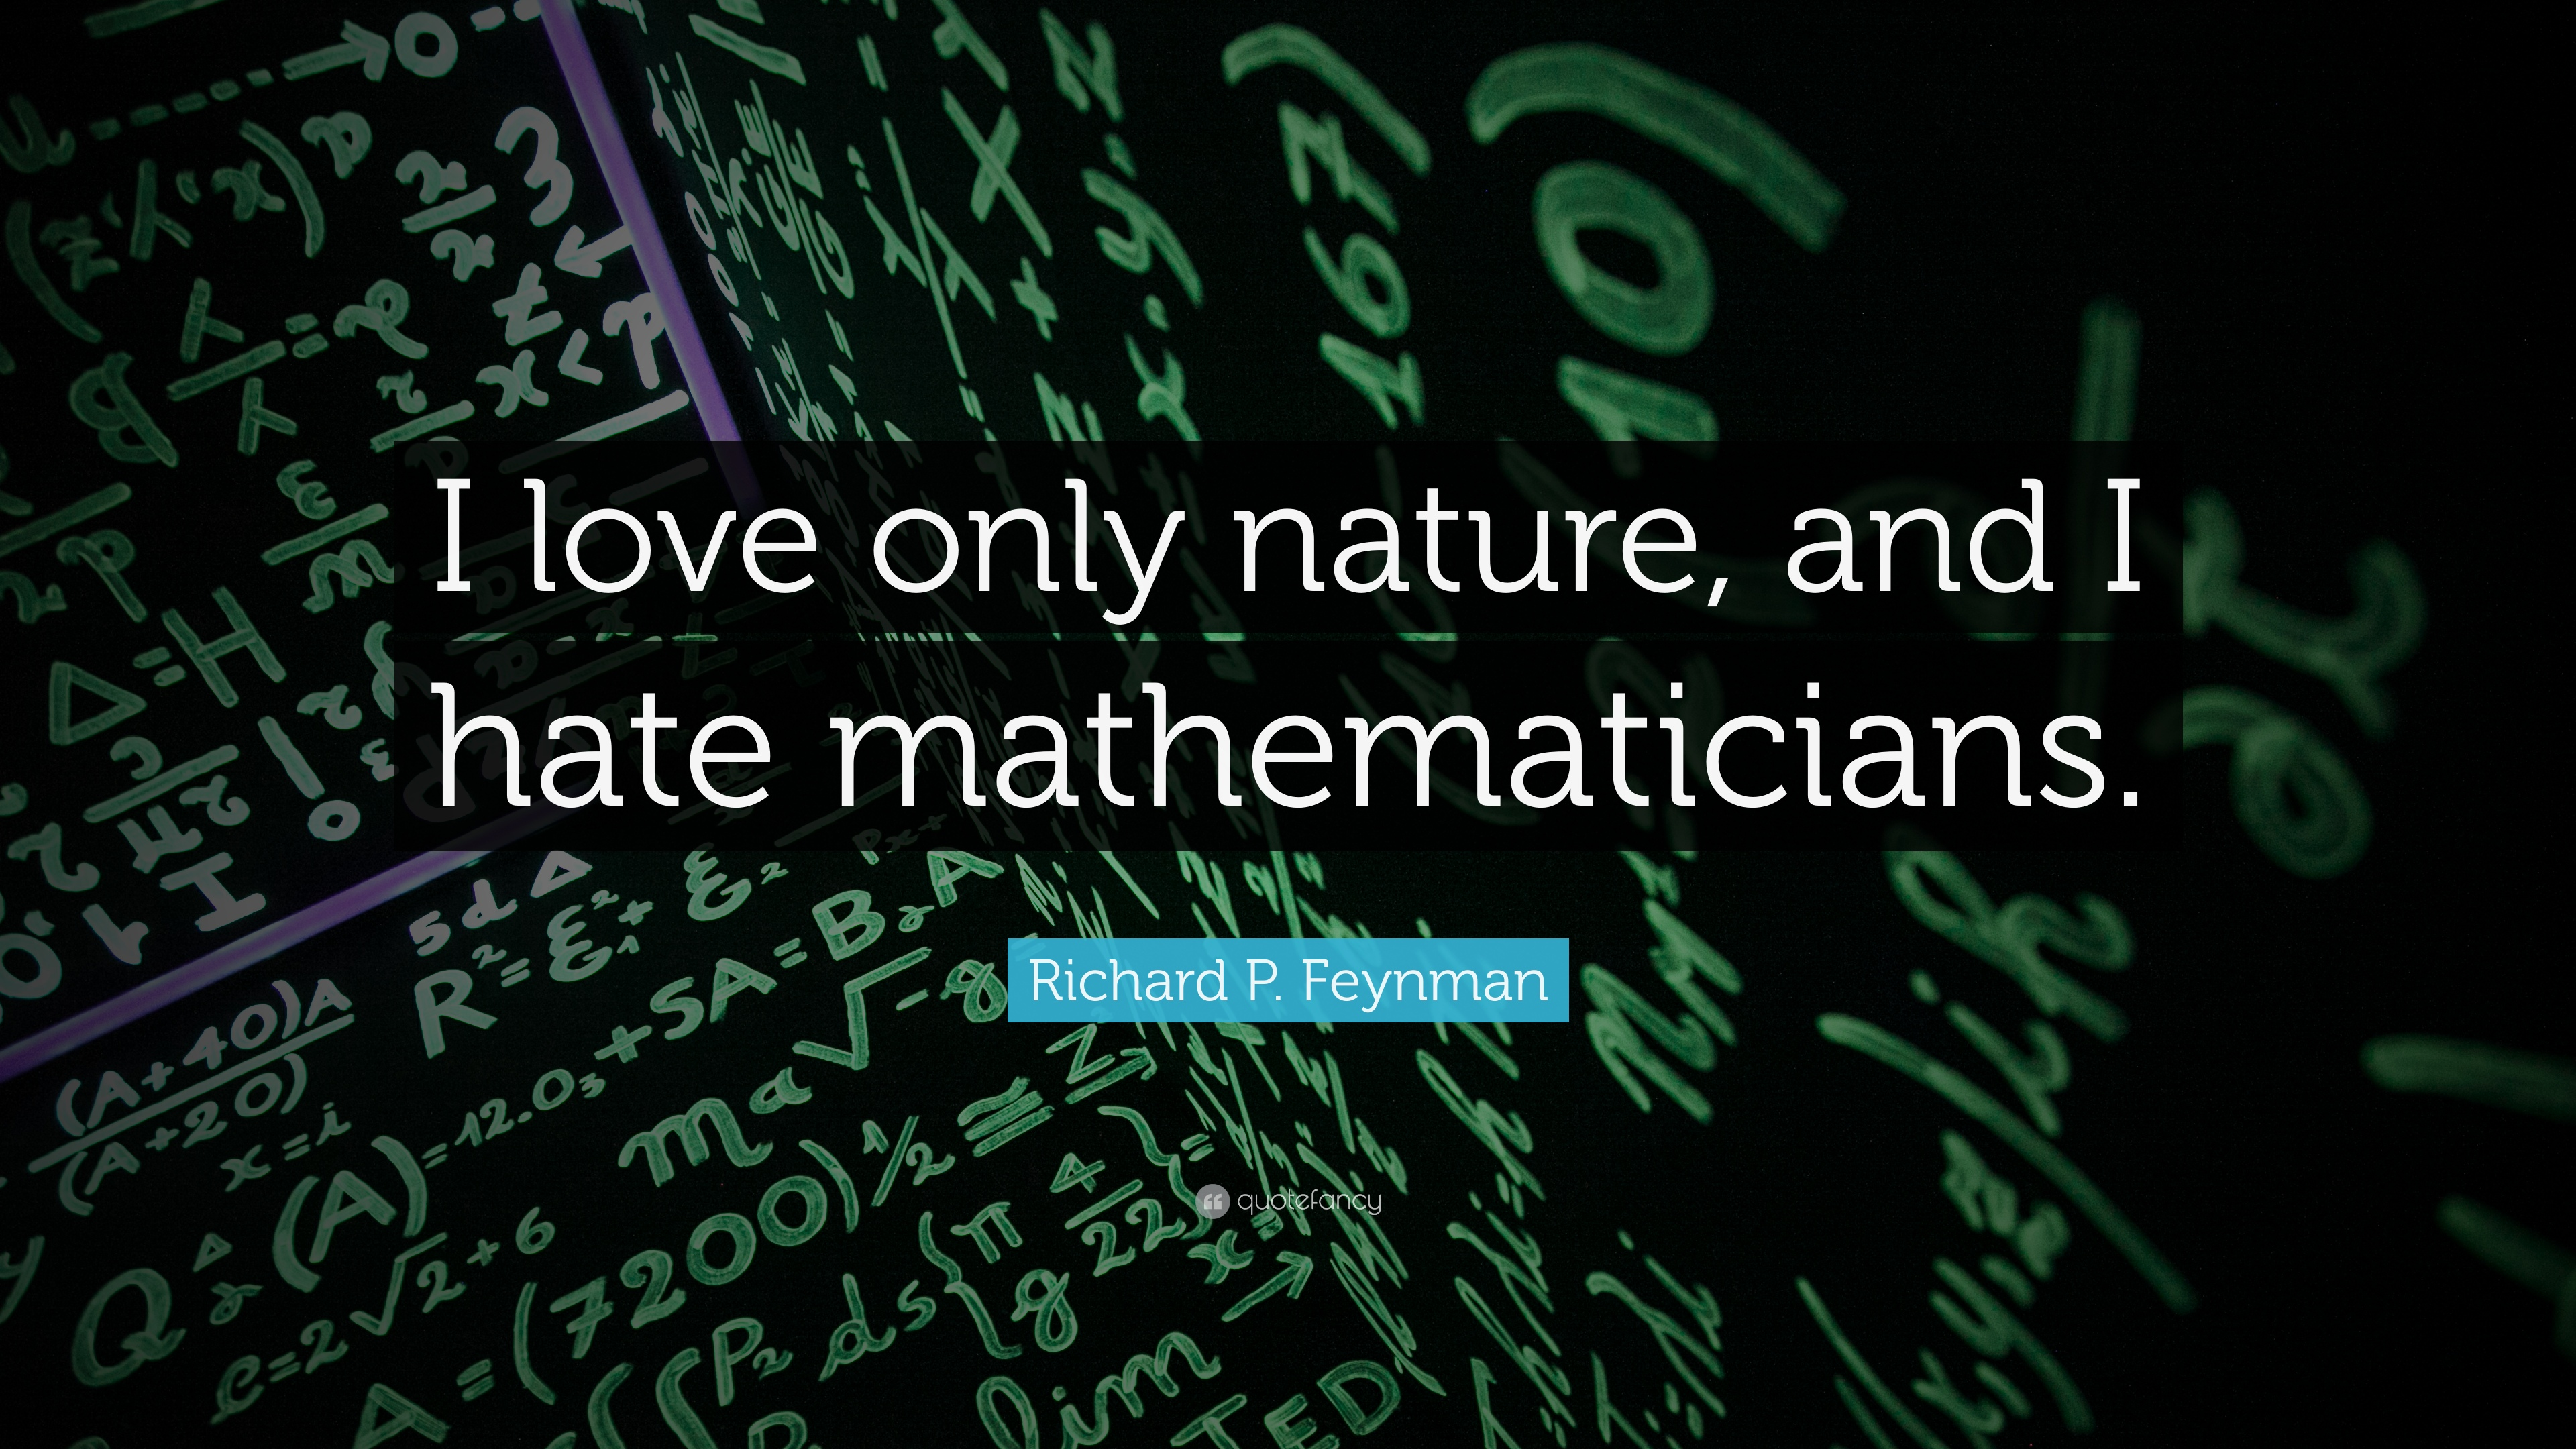 Richard P Feynman Quote I Love Only Nature And I Hate